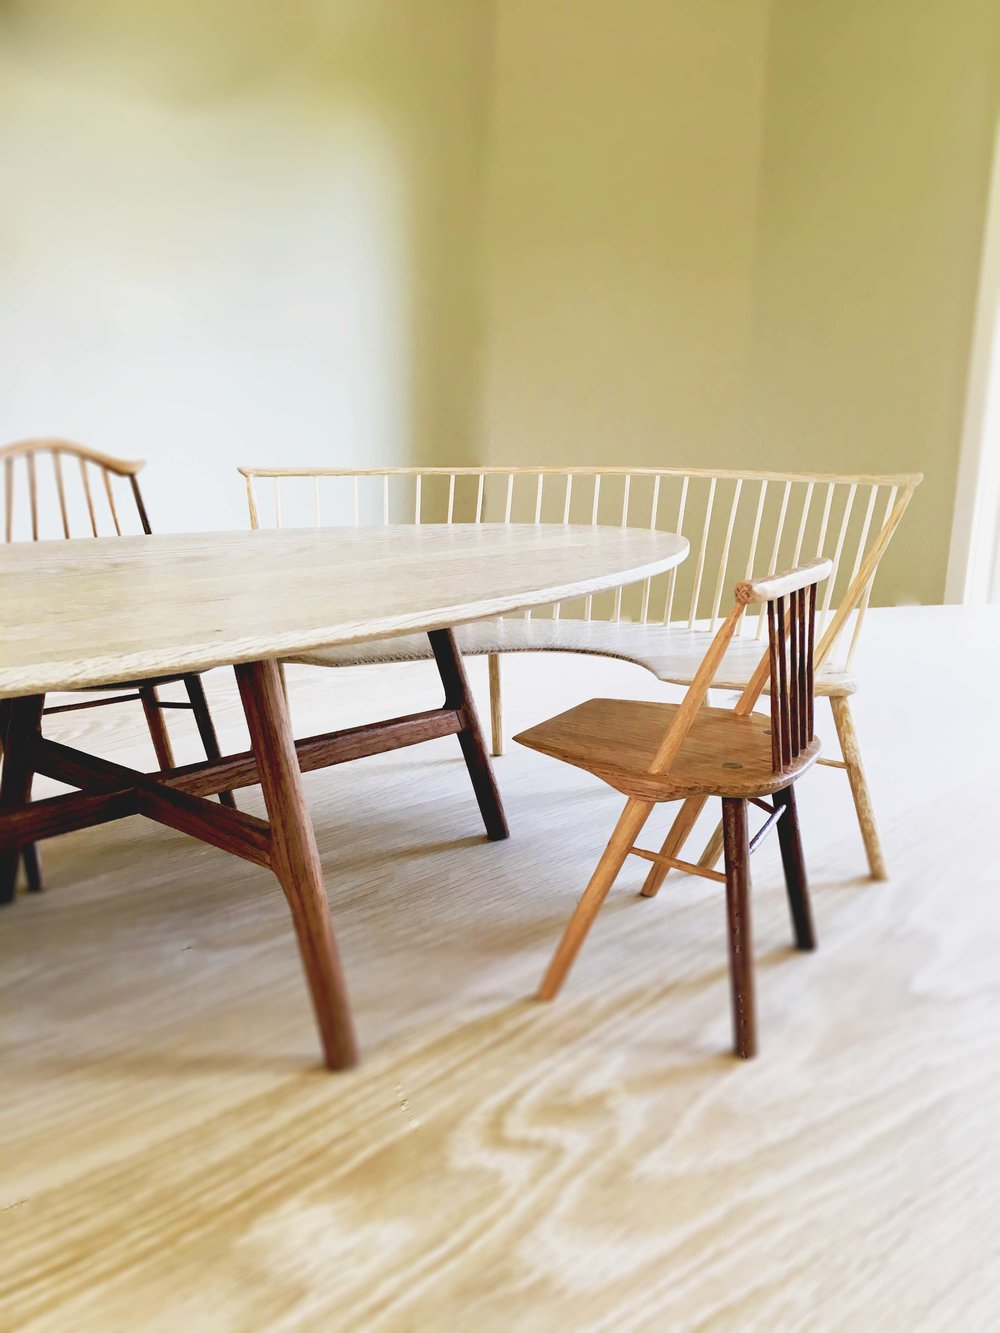 Charming Tiny Table With Chairs